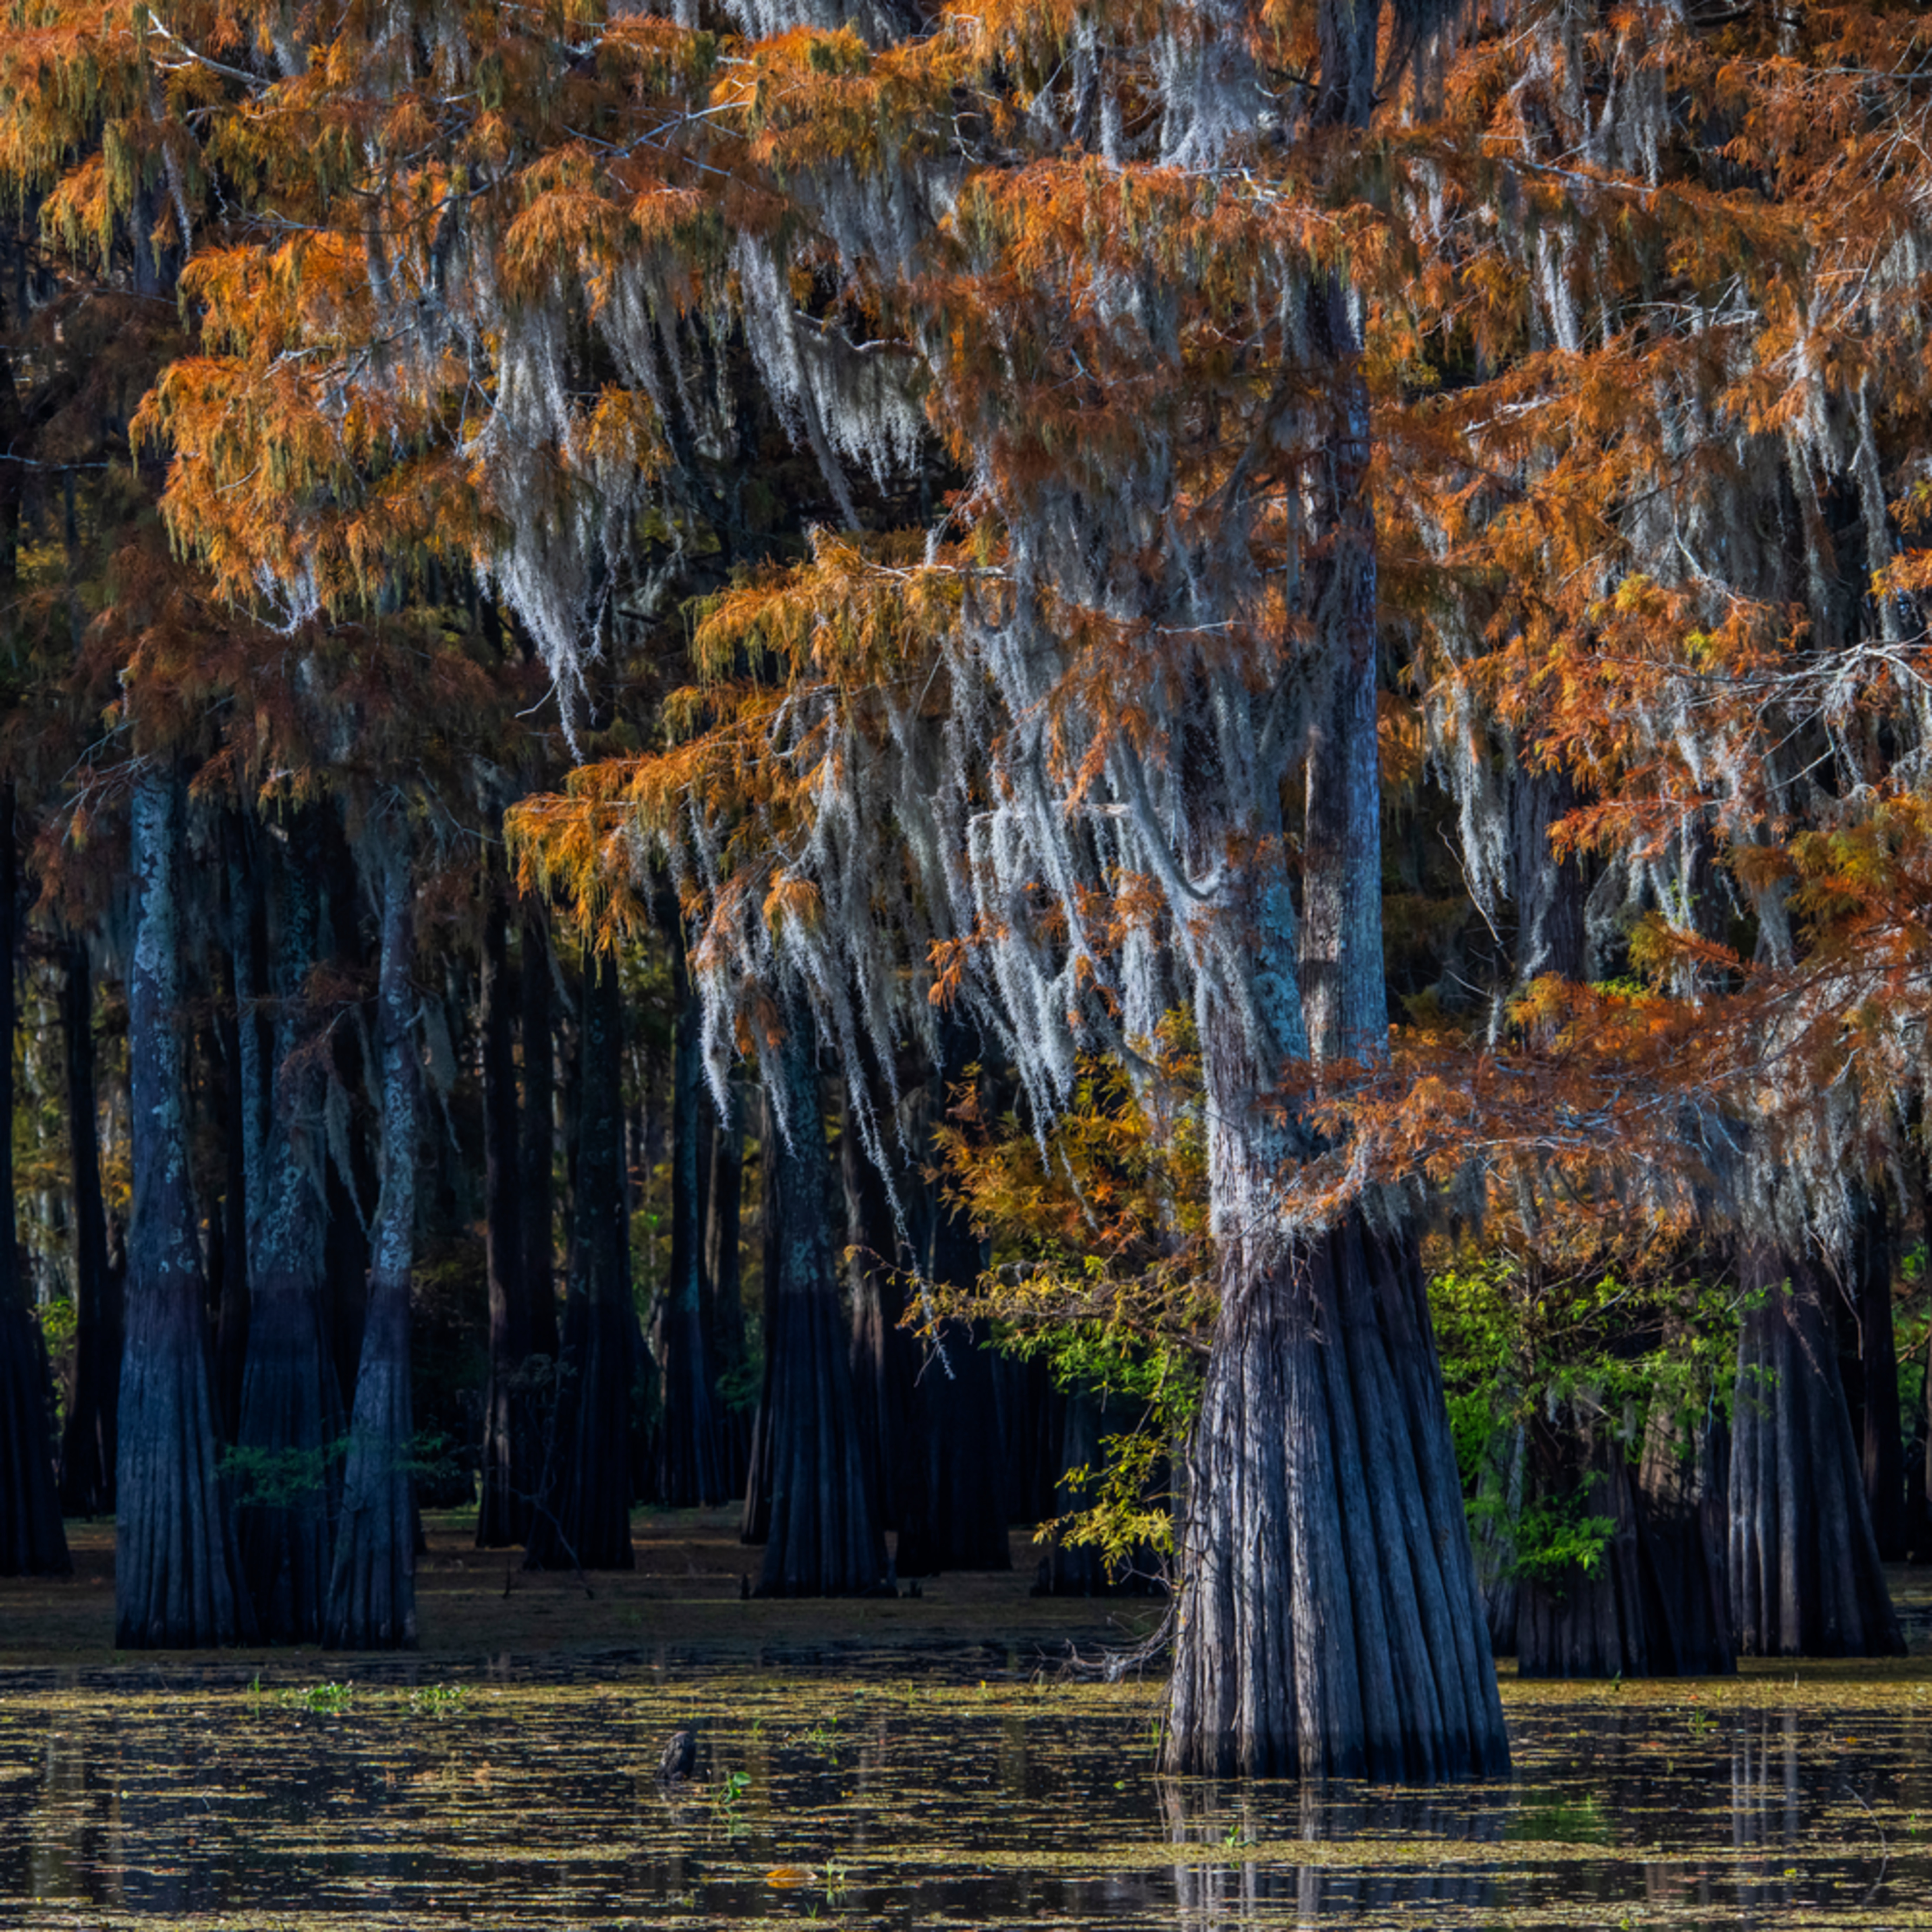 Andy crawford photography henderson swamp 1 kprwds